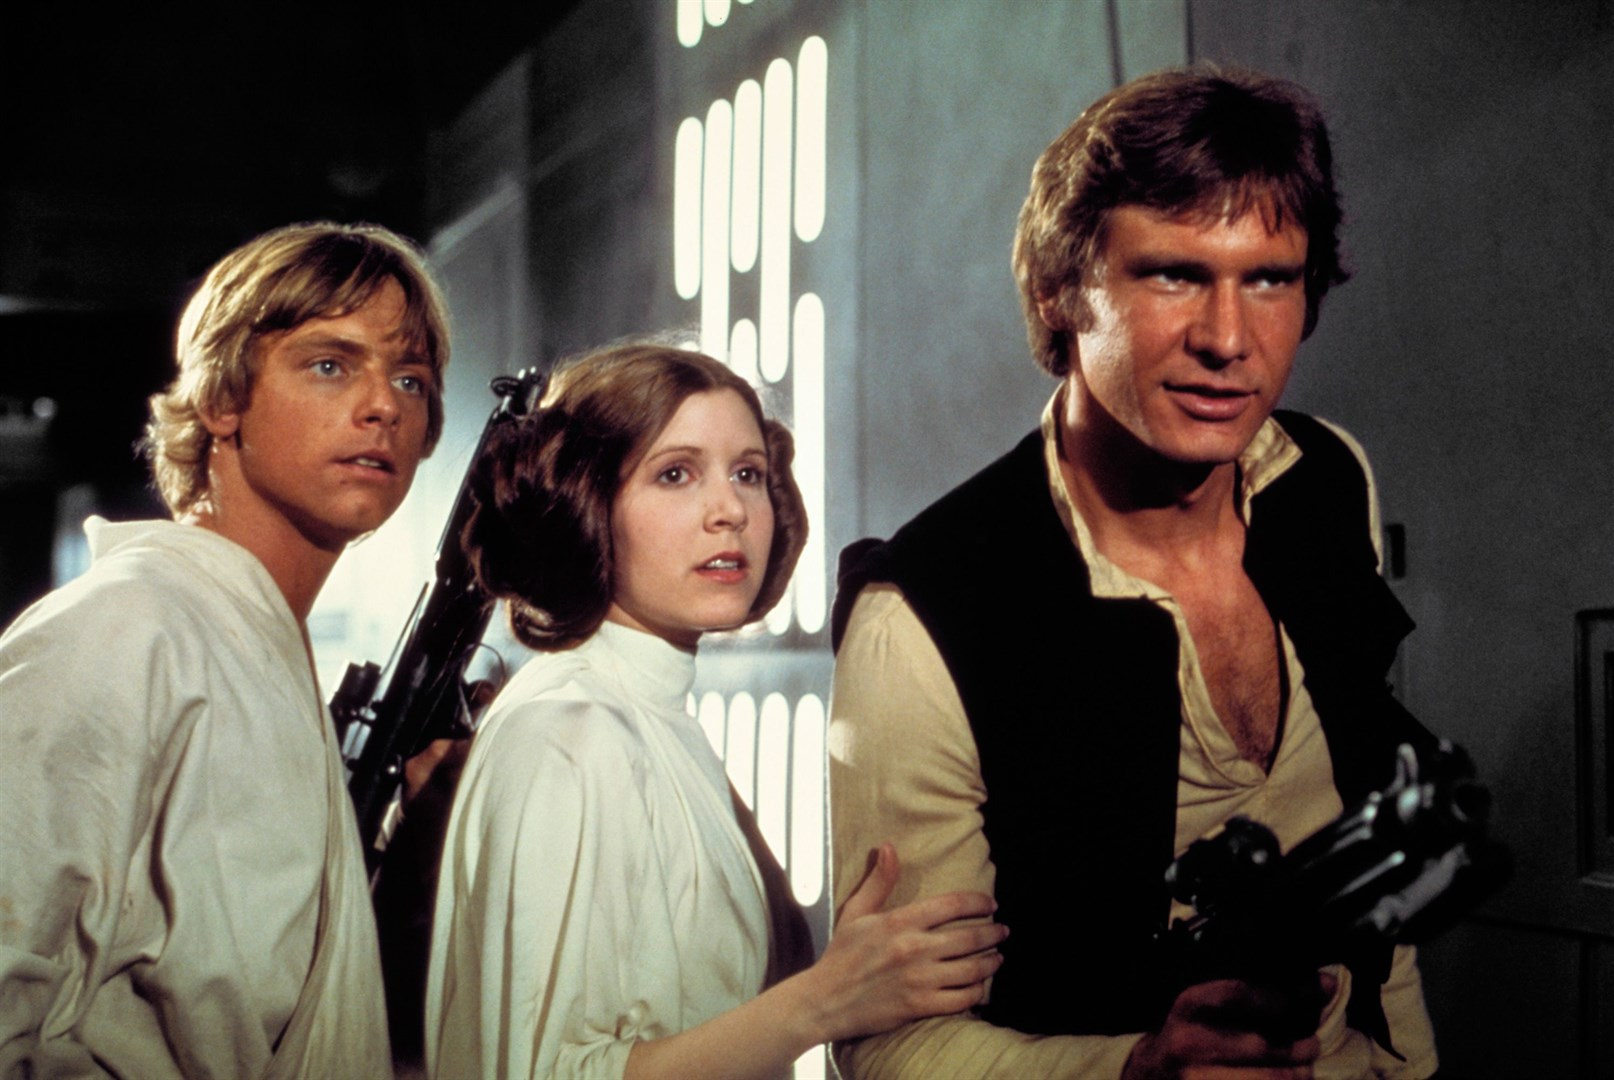 Luke, Han, and Princess Leia, before the romance mucked up the trio